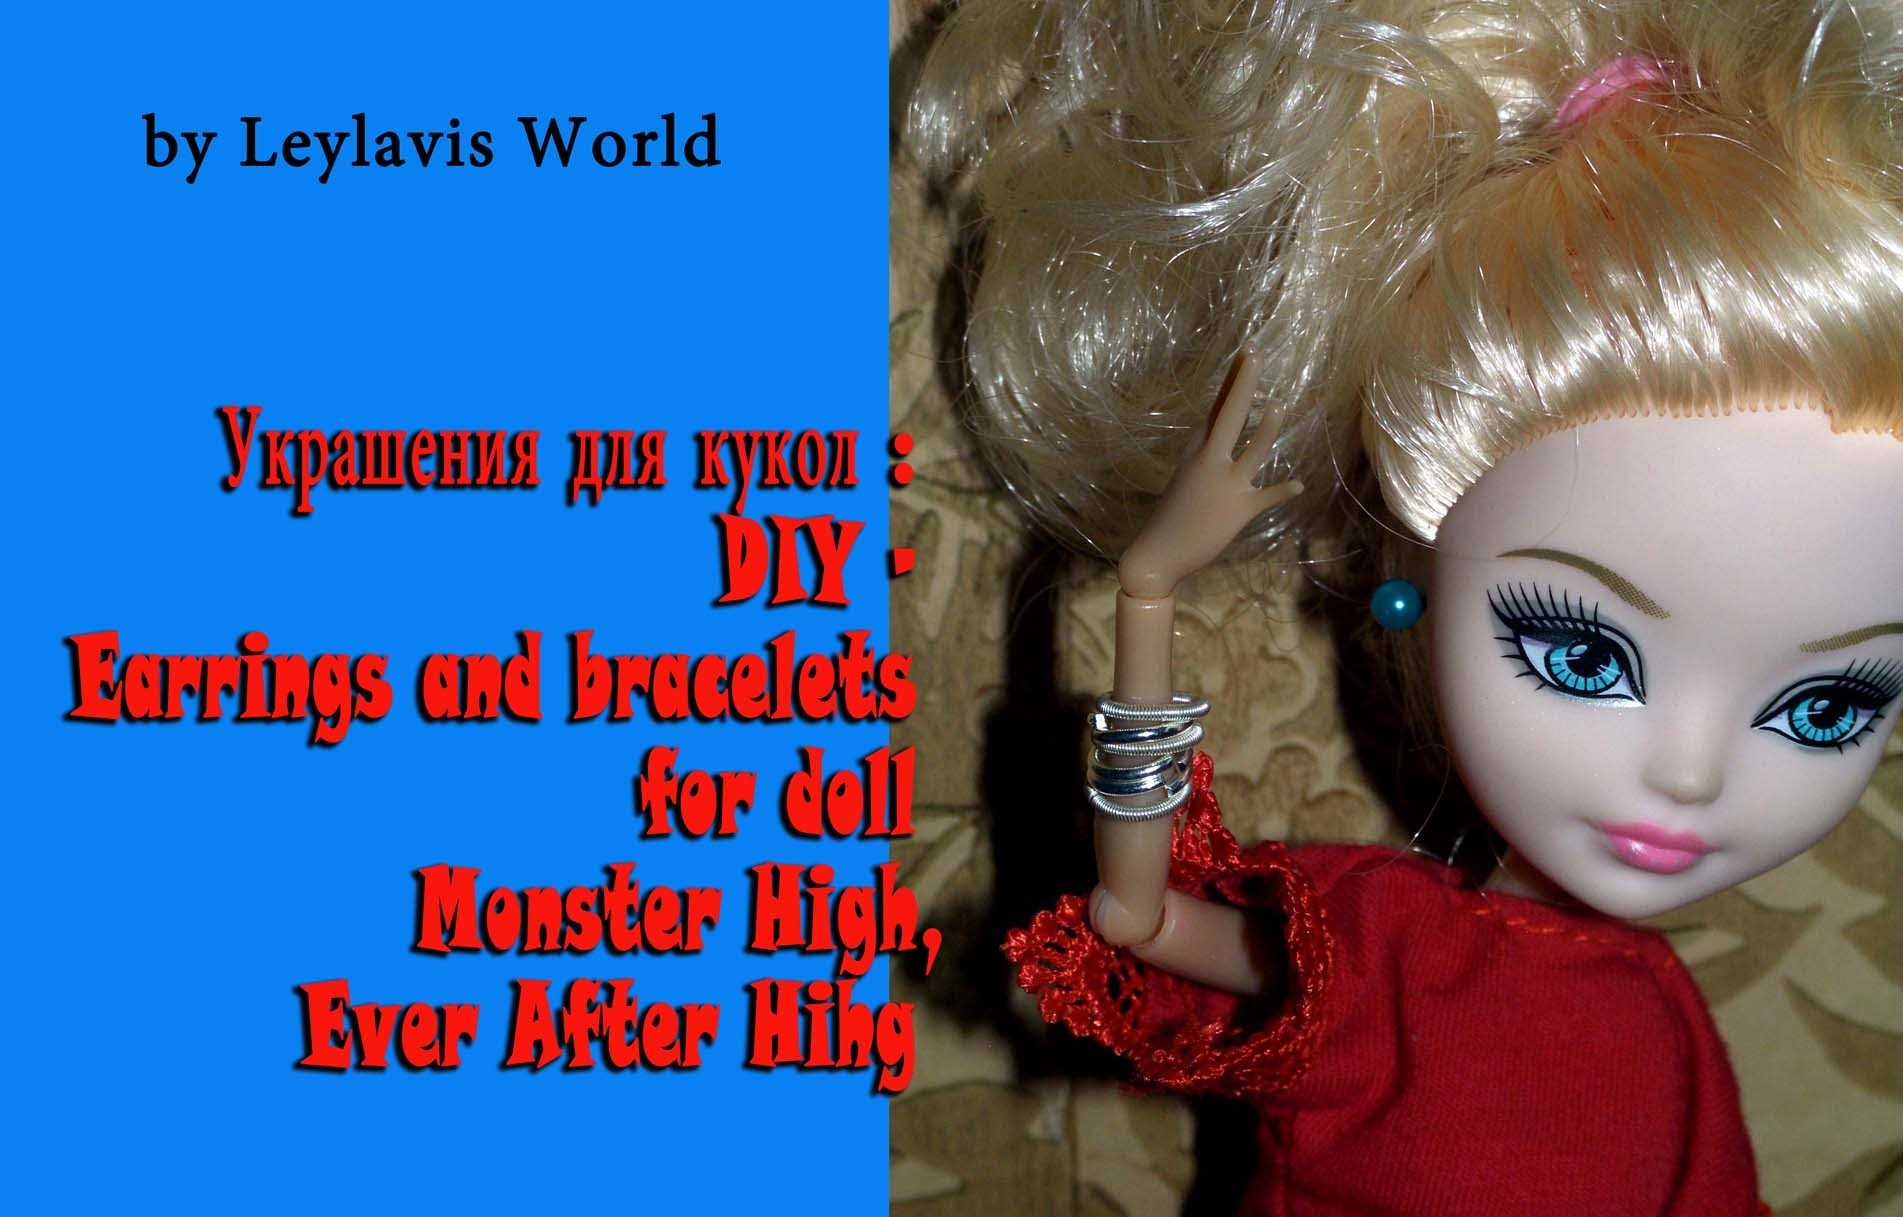 Украшения для кукол : DIY - Earrings and bracelets for doll Monster High, Ever After Hihg